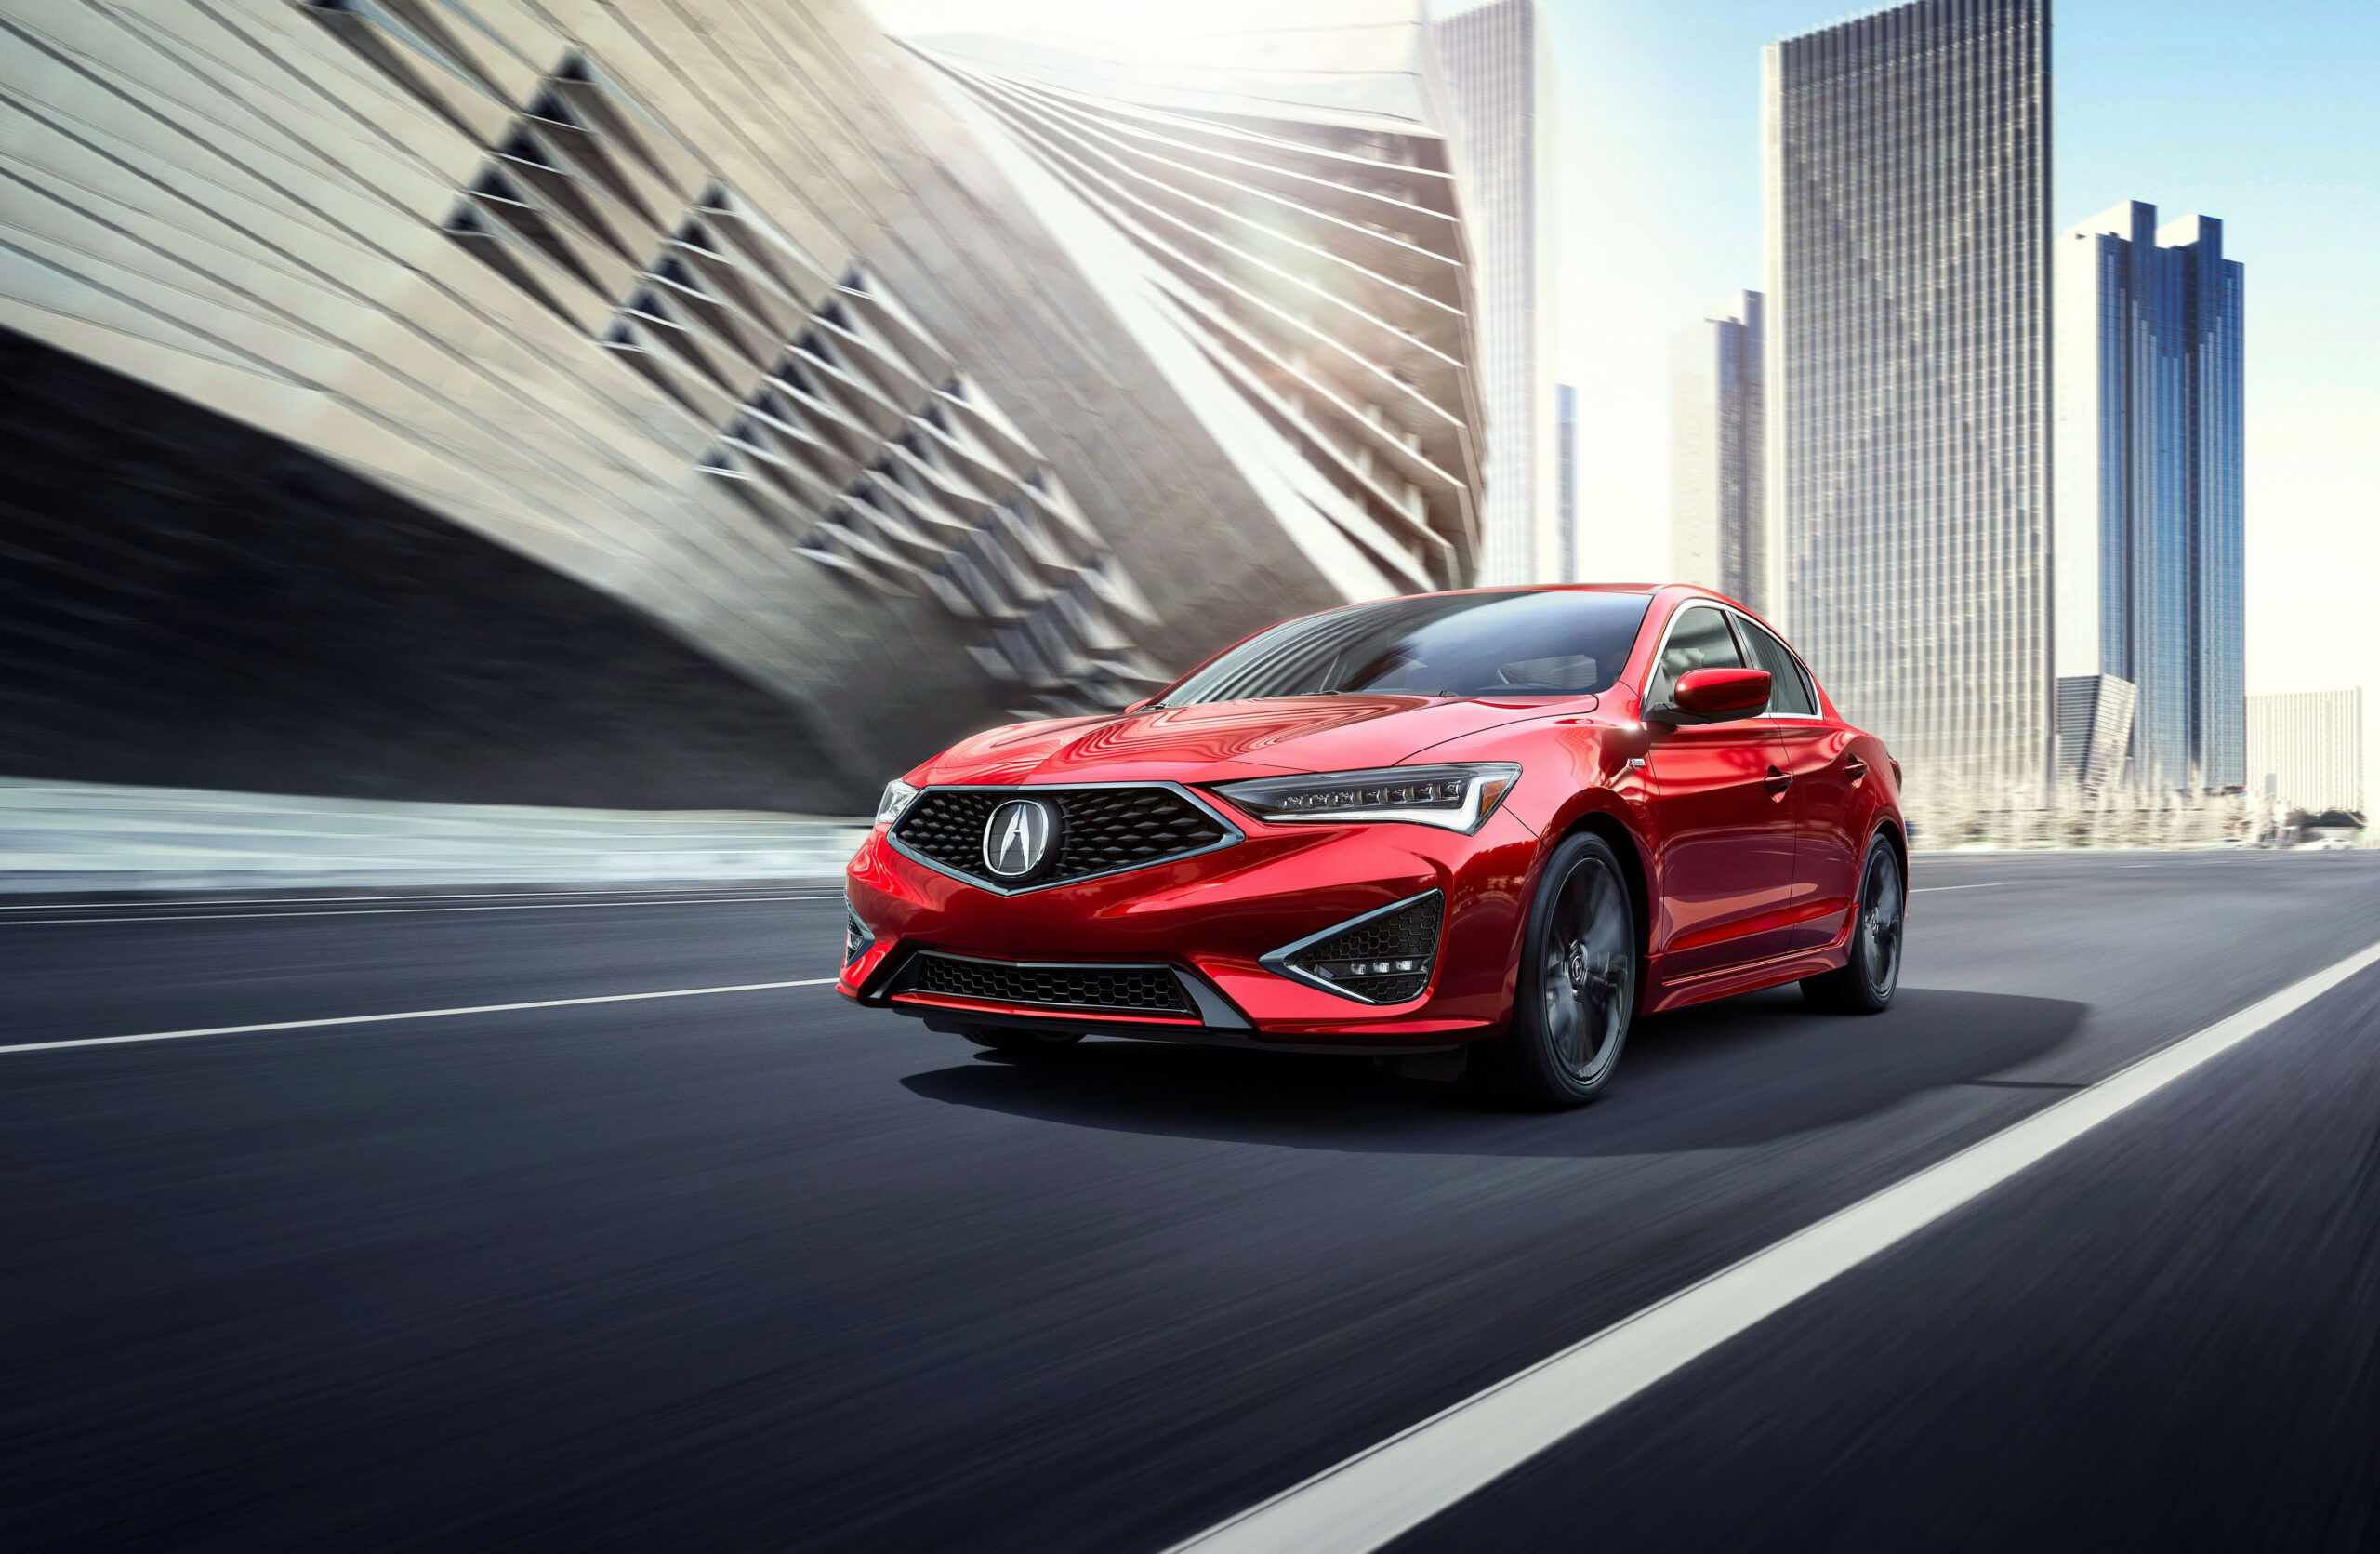 8 Acura ILX Review, Pricing, and Specs